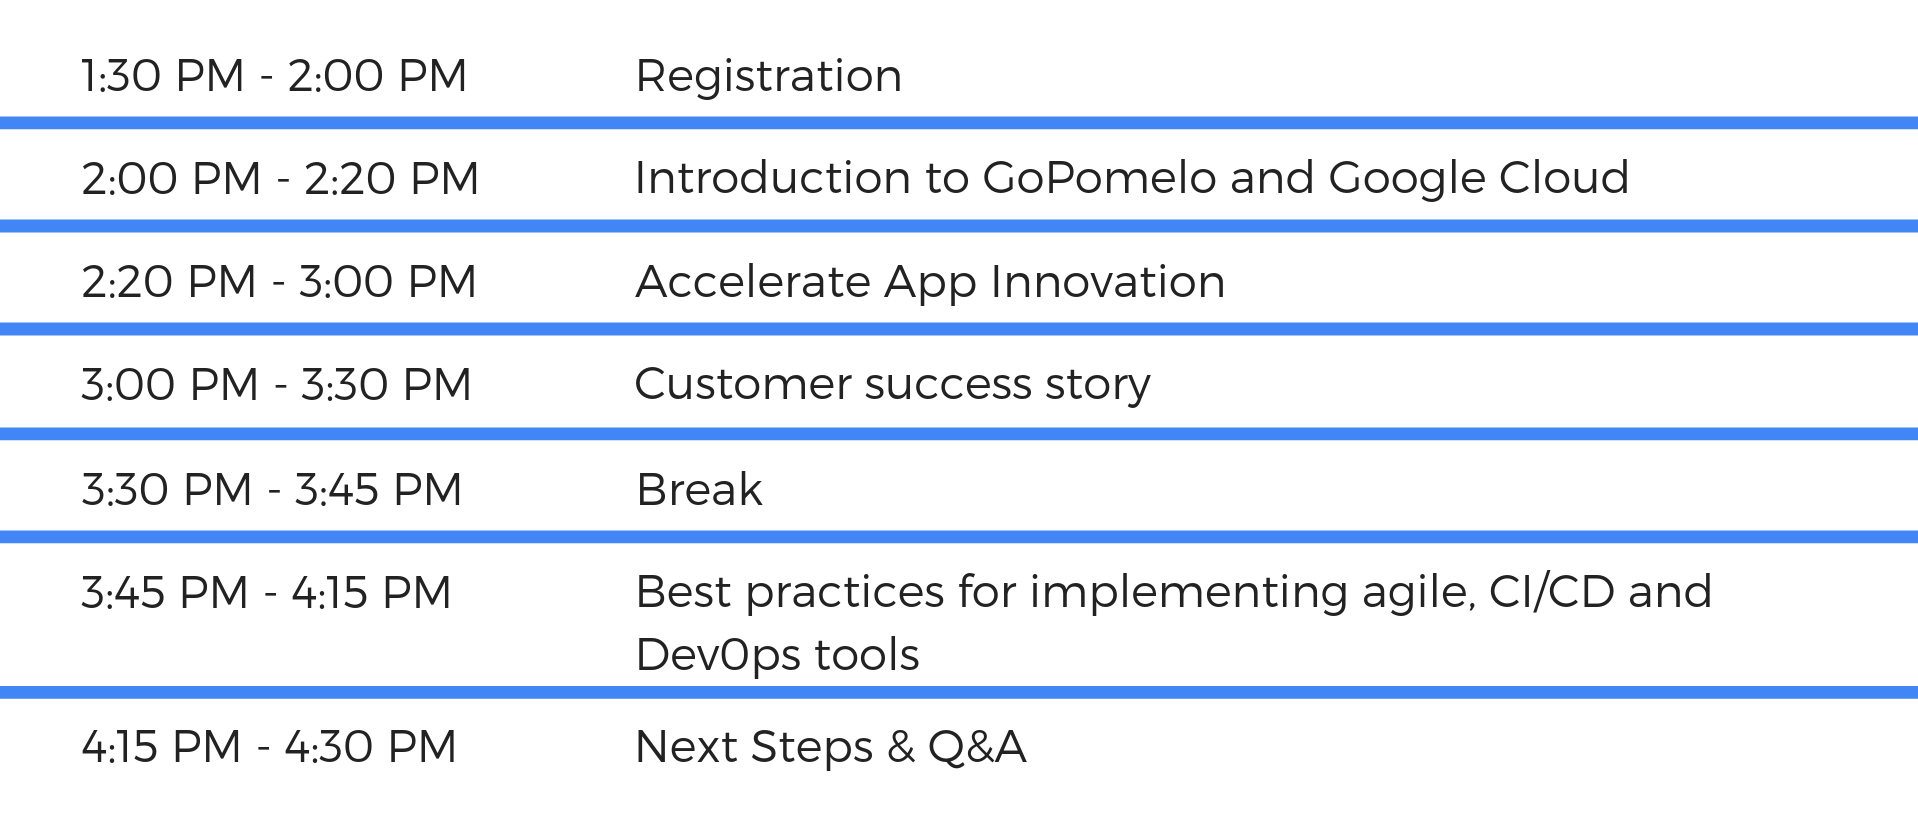 Accelerate App Innovation - March 21, 2019 - Edited